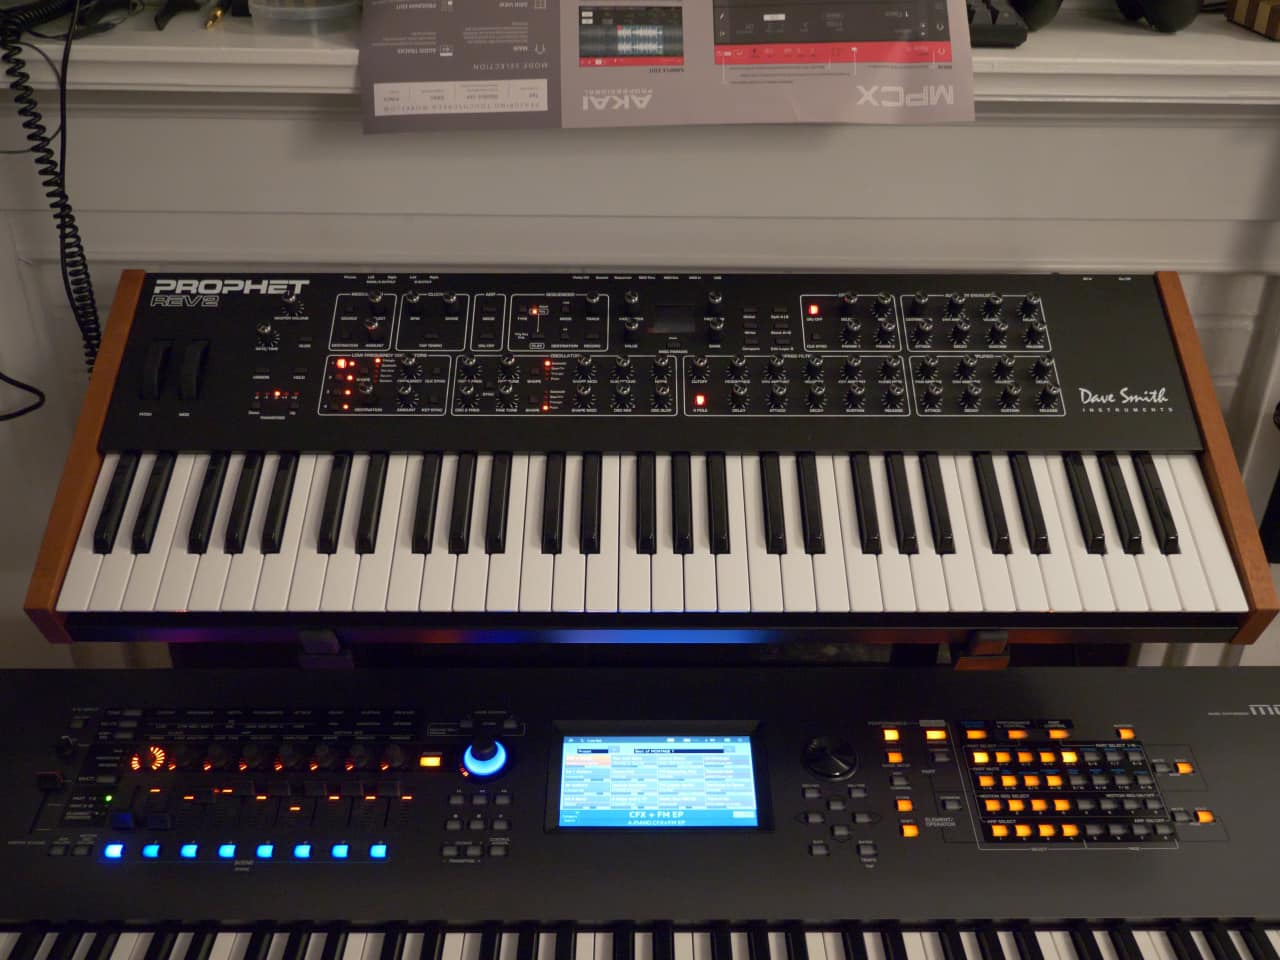 dave smith instruments prophet rev 2 16 voice synth also reverb. Black Bedroom Furniture Sets. Home Design Ideas